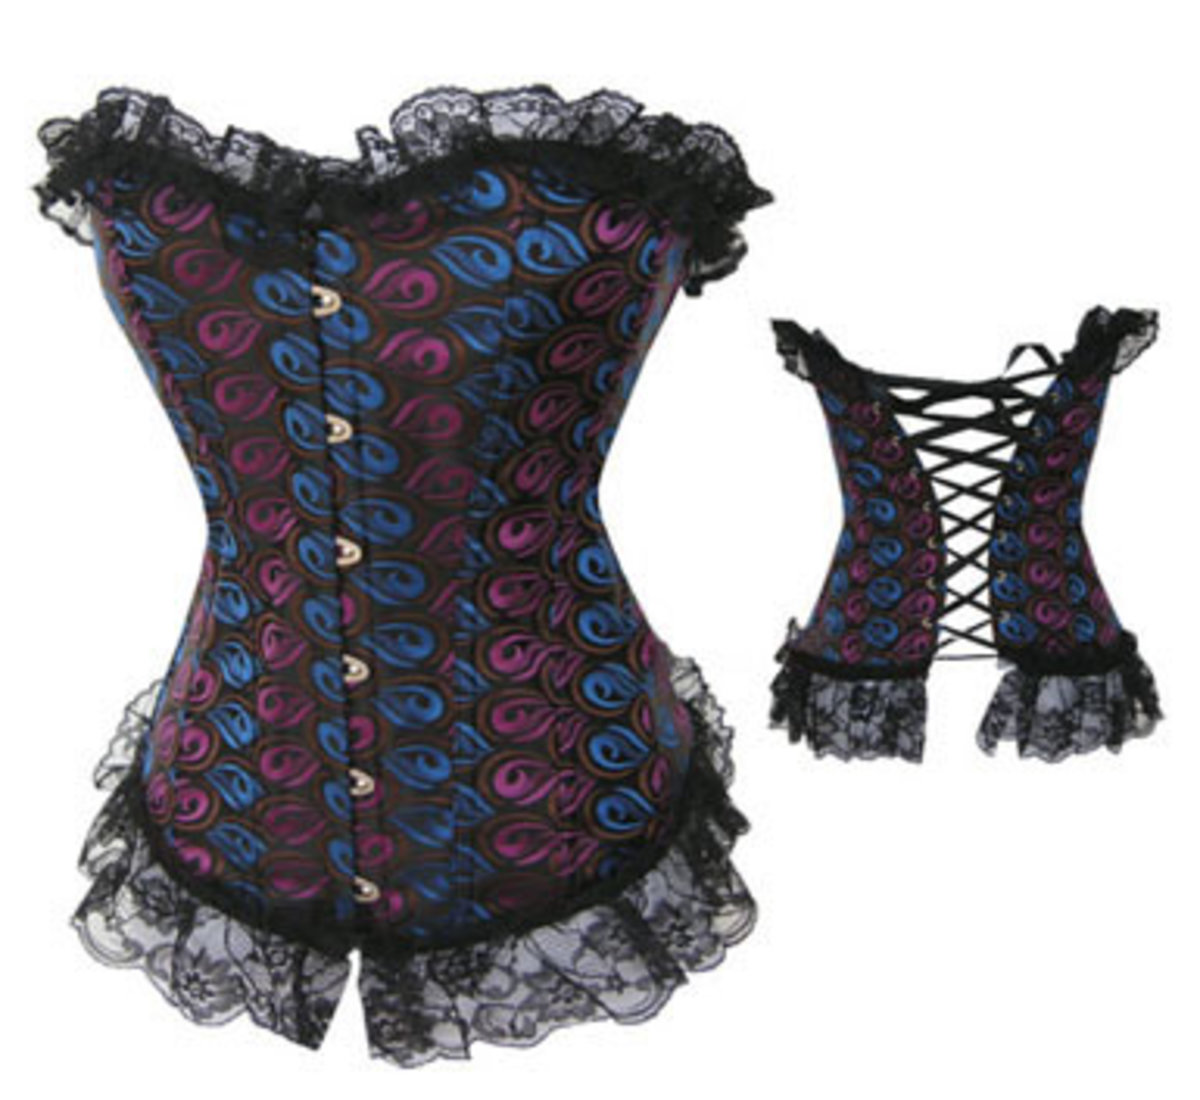 Sexy Lace up Corset for the full figured woman, well any woman ;)